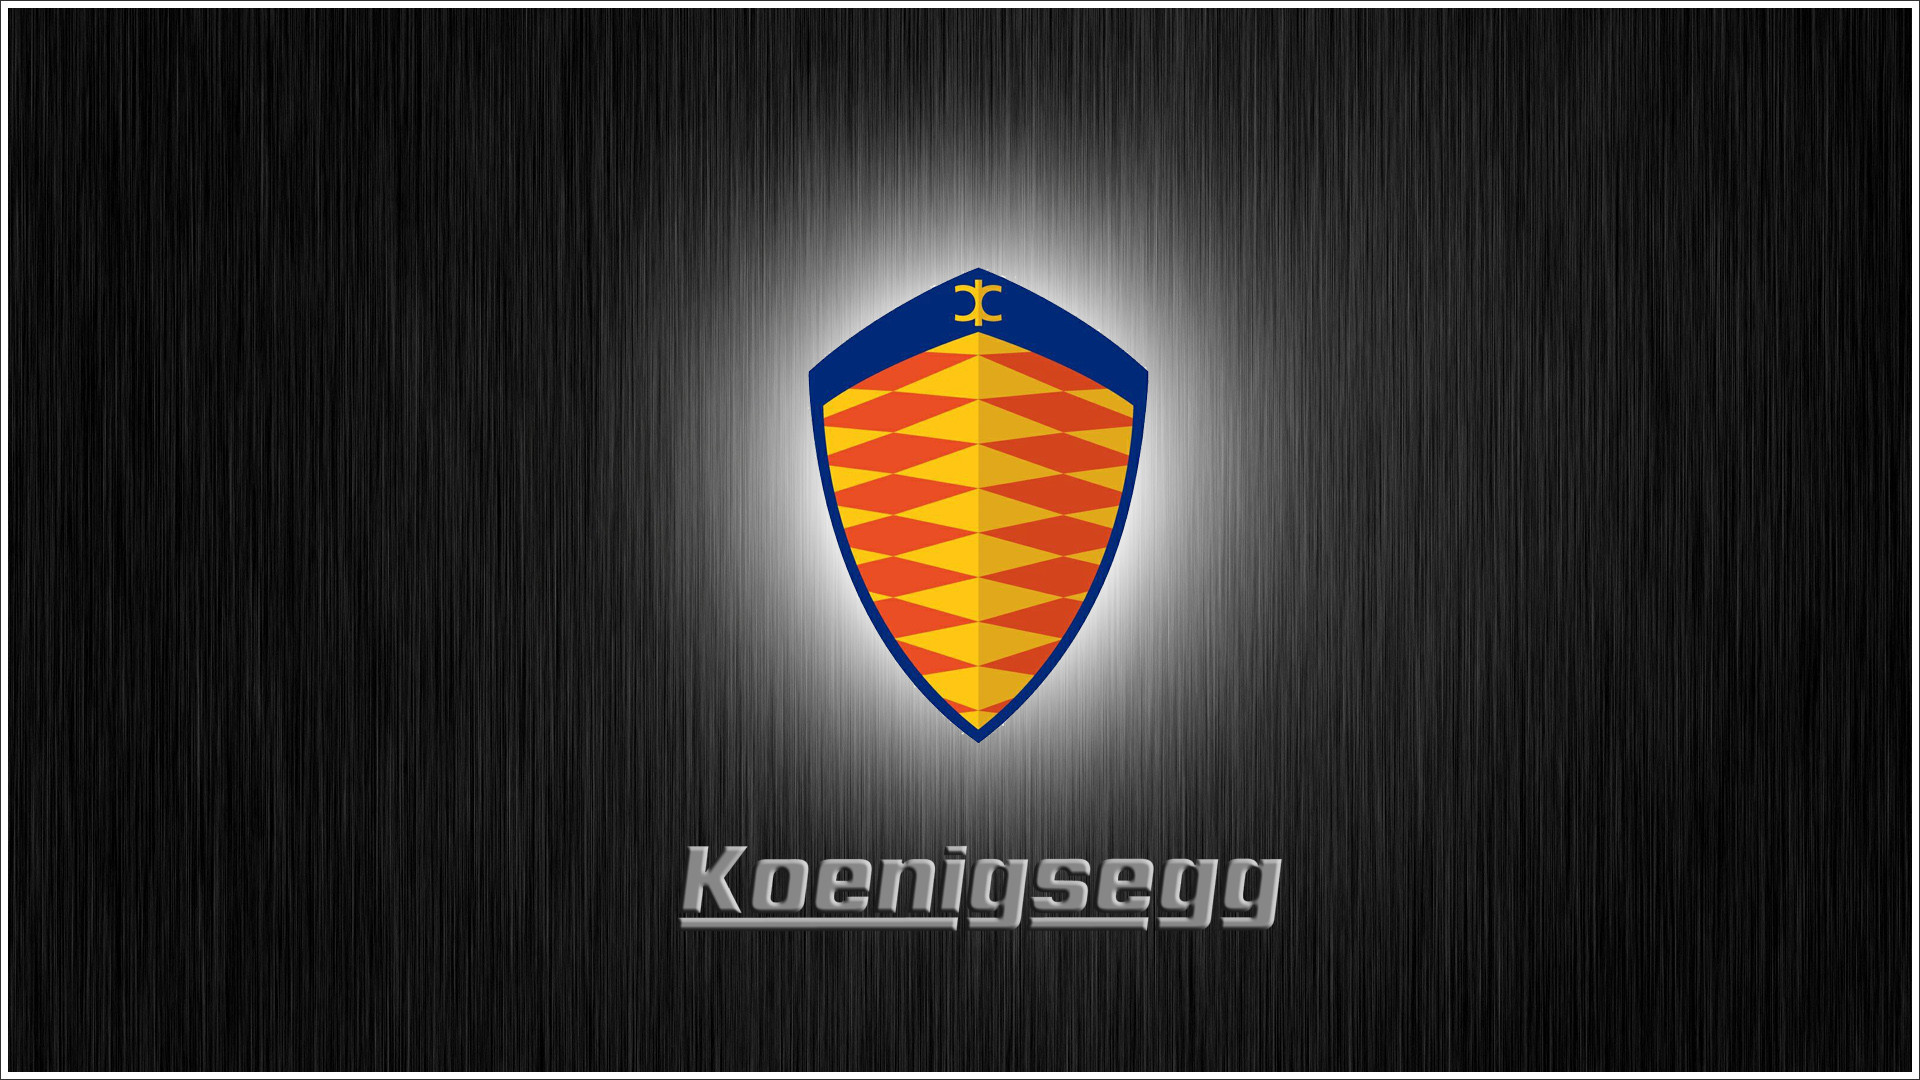 1920x1080 koenigsegg logo meaning and history latest models world